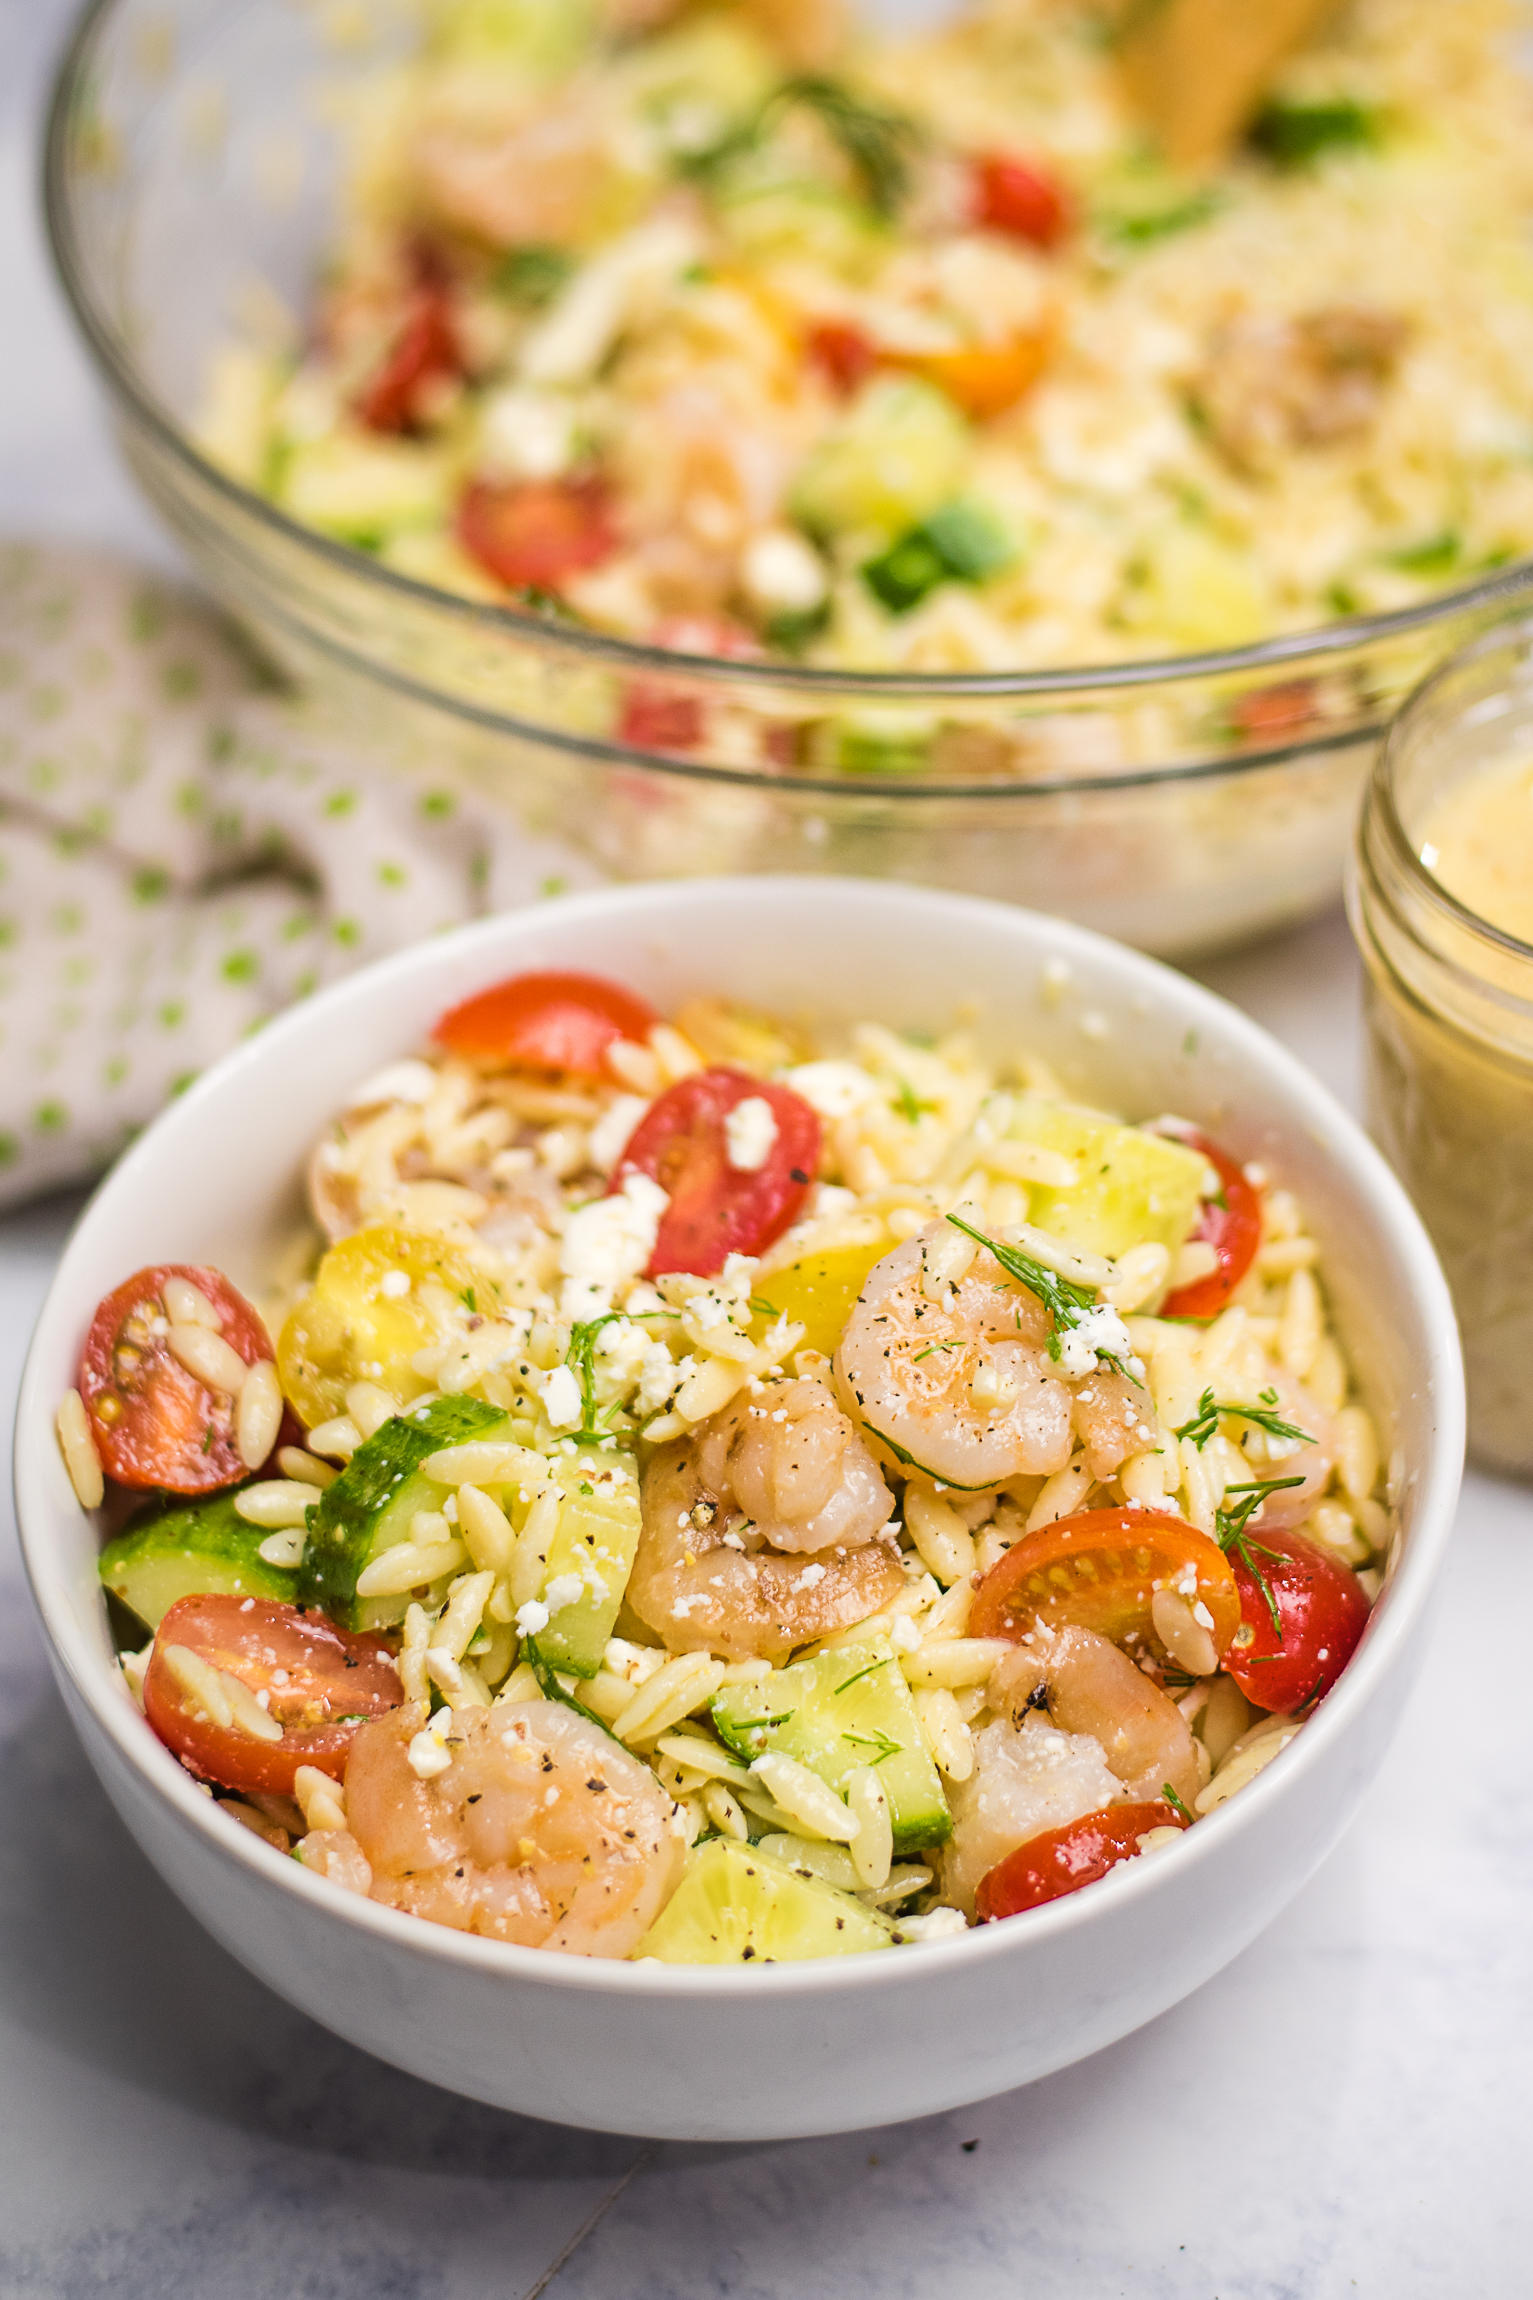 Summertime Greek Orzo Salad with Shrimp, Lemon, and Fresh Dill